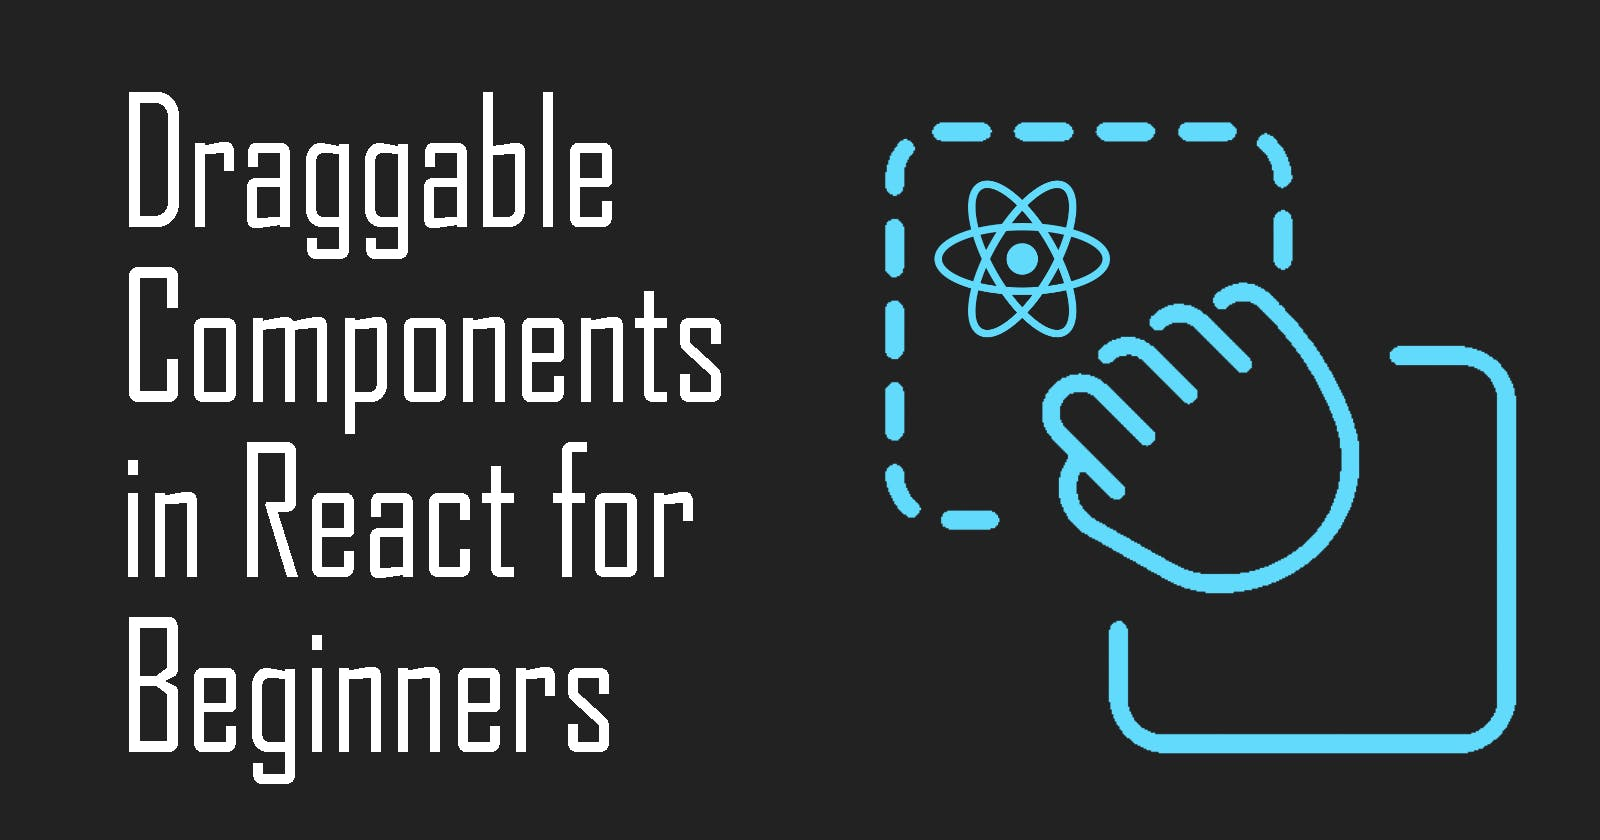 Making Draggable Components in React